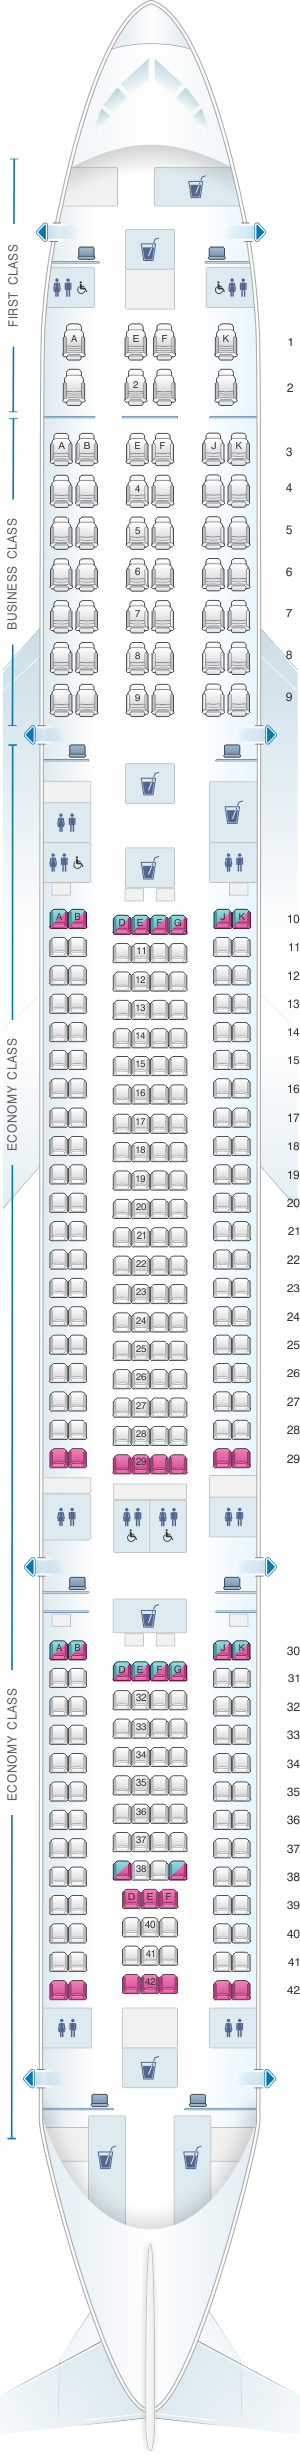 Seat map for Qatar Airways Airbus A340 600